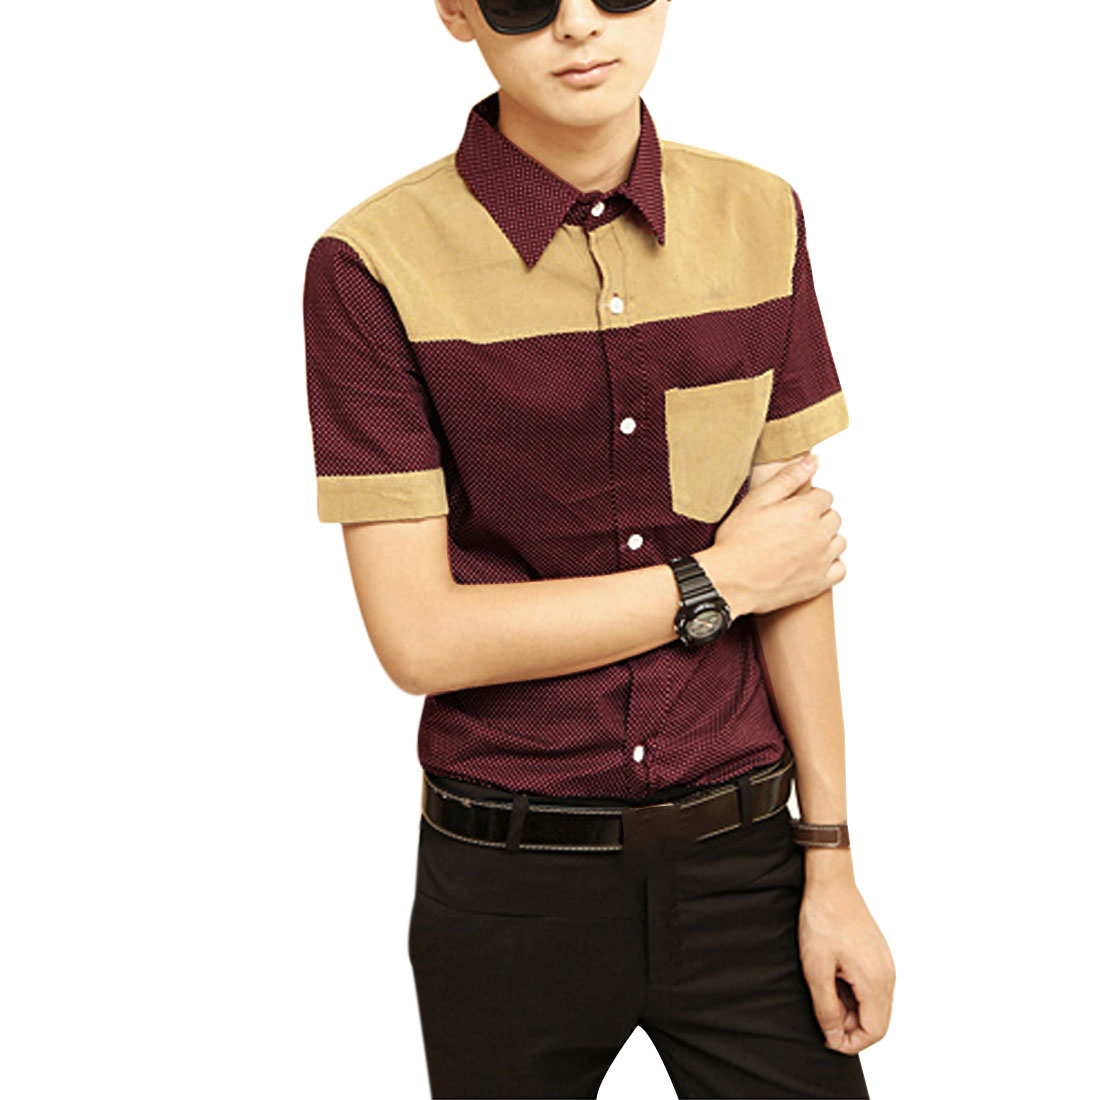 Men Chic Polka-Dotted Prints Corduroy Splice Burgundy Casual Shirt M